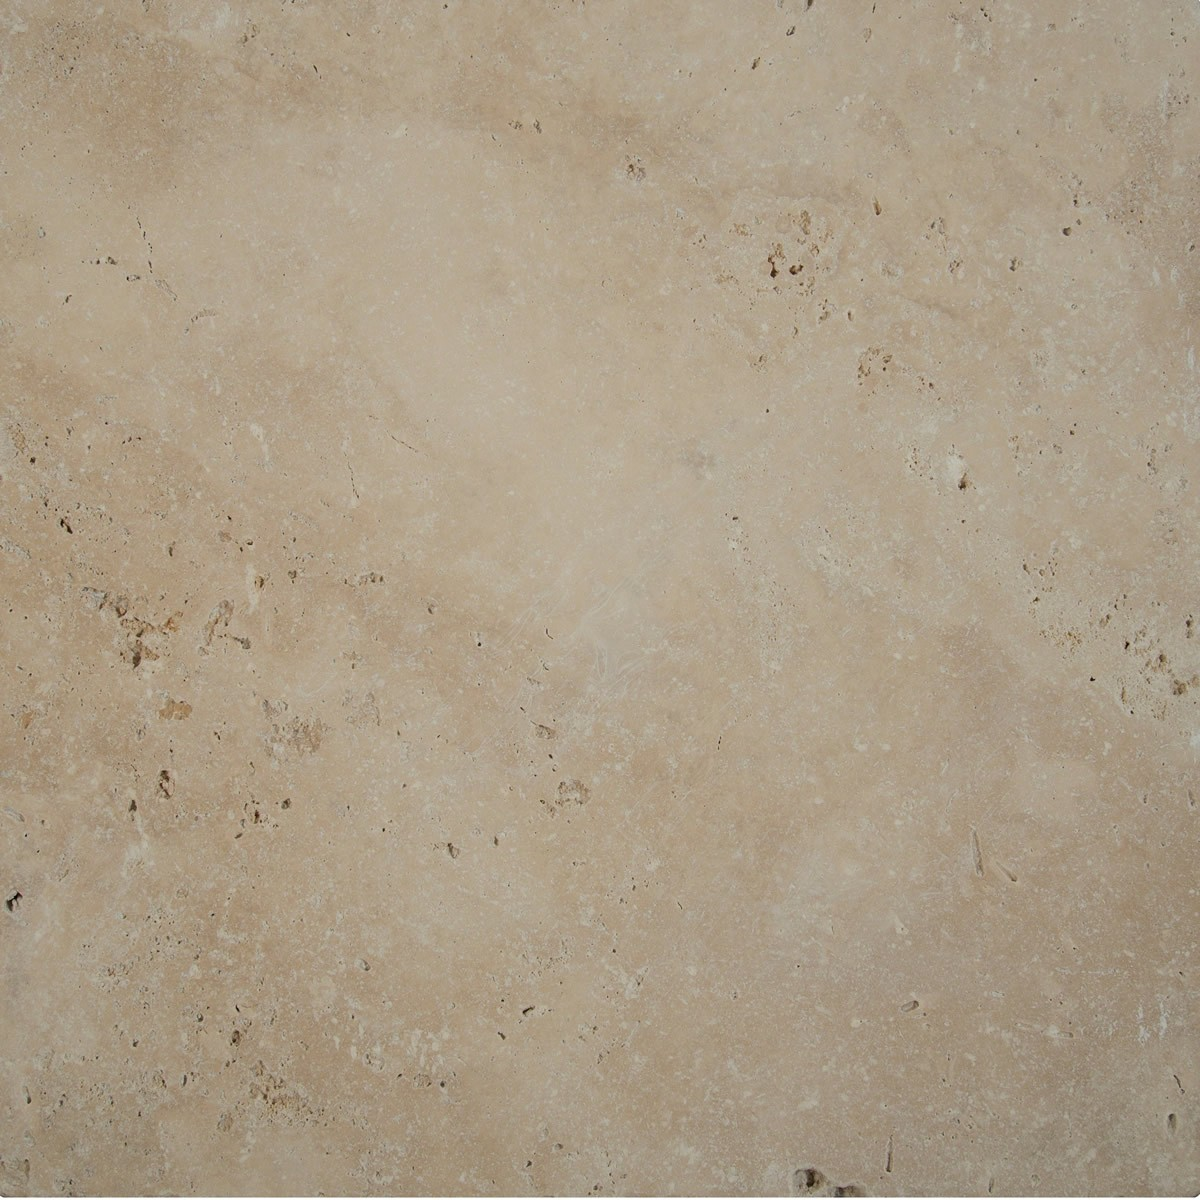 TUSCANY BEIGE 16 in  x 16 in  x 1 25 in TUMBLED PAVERS